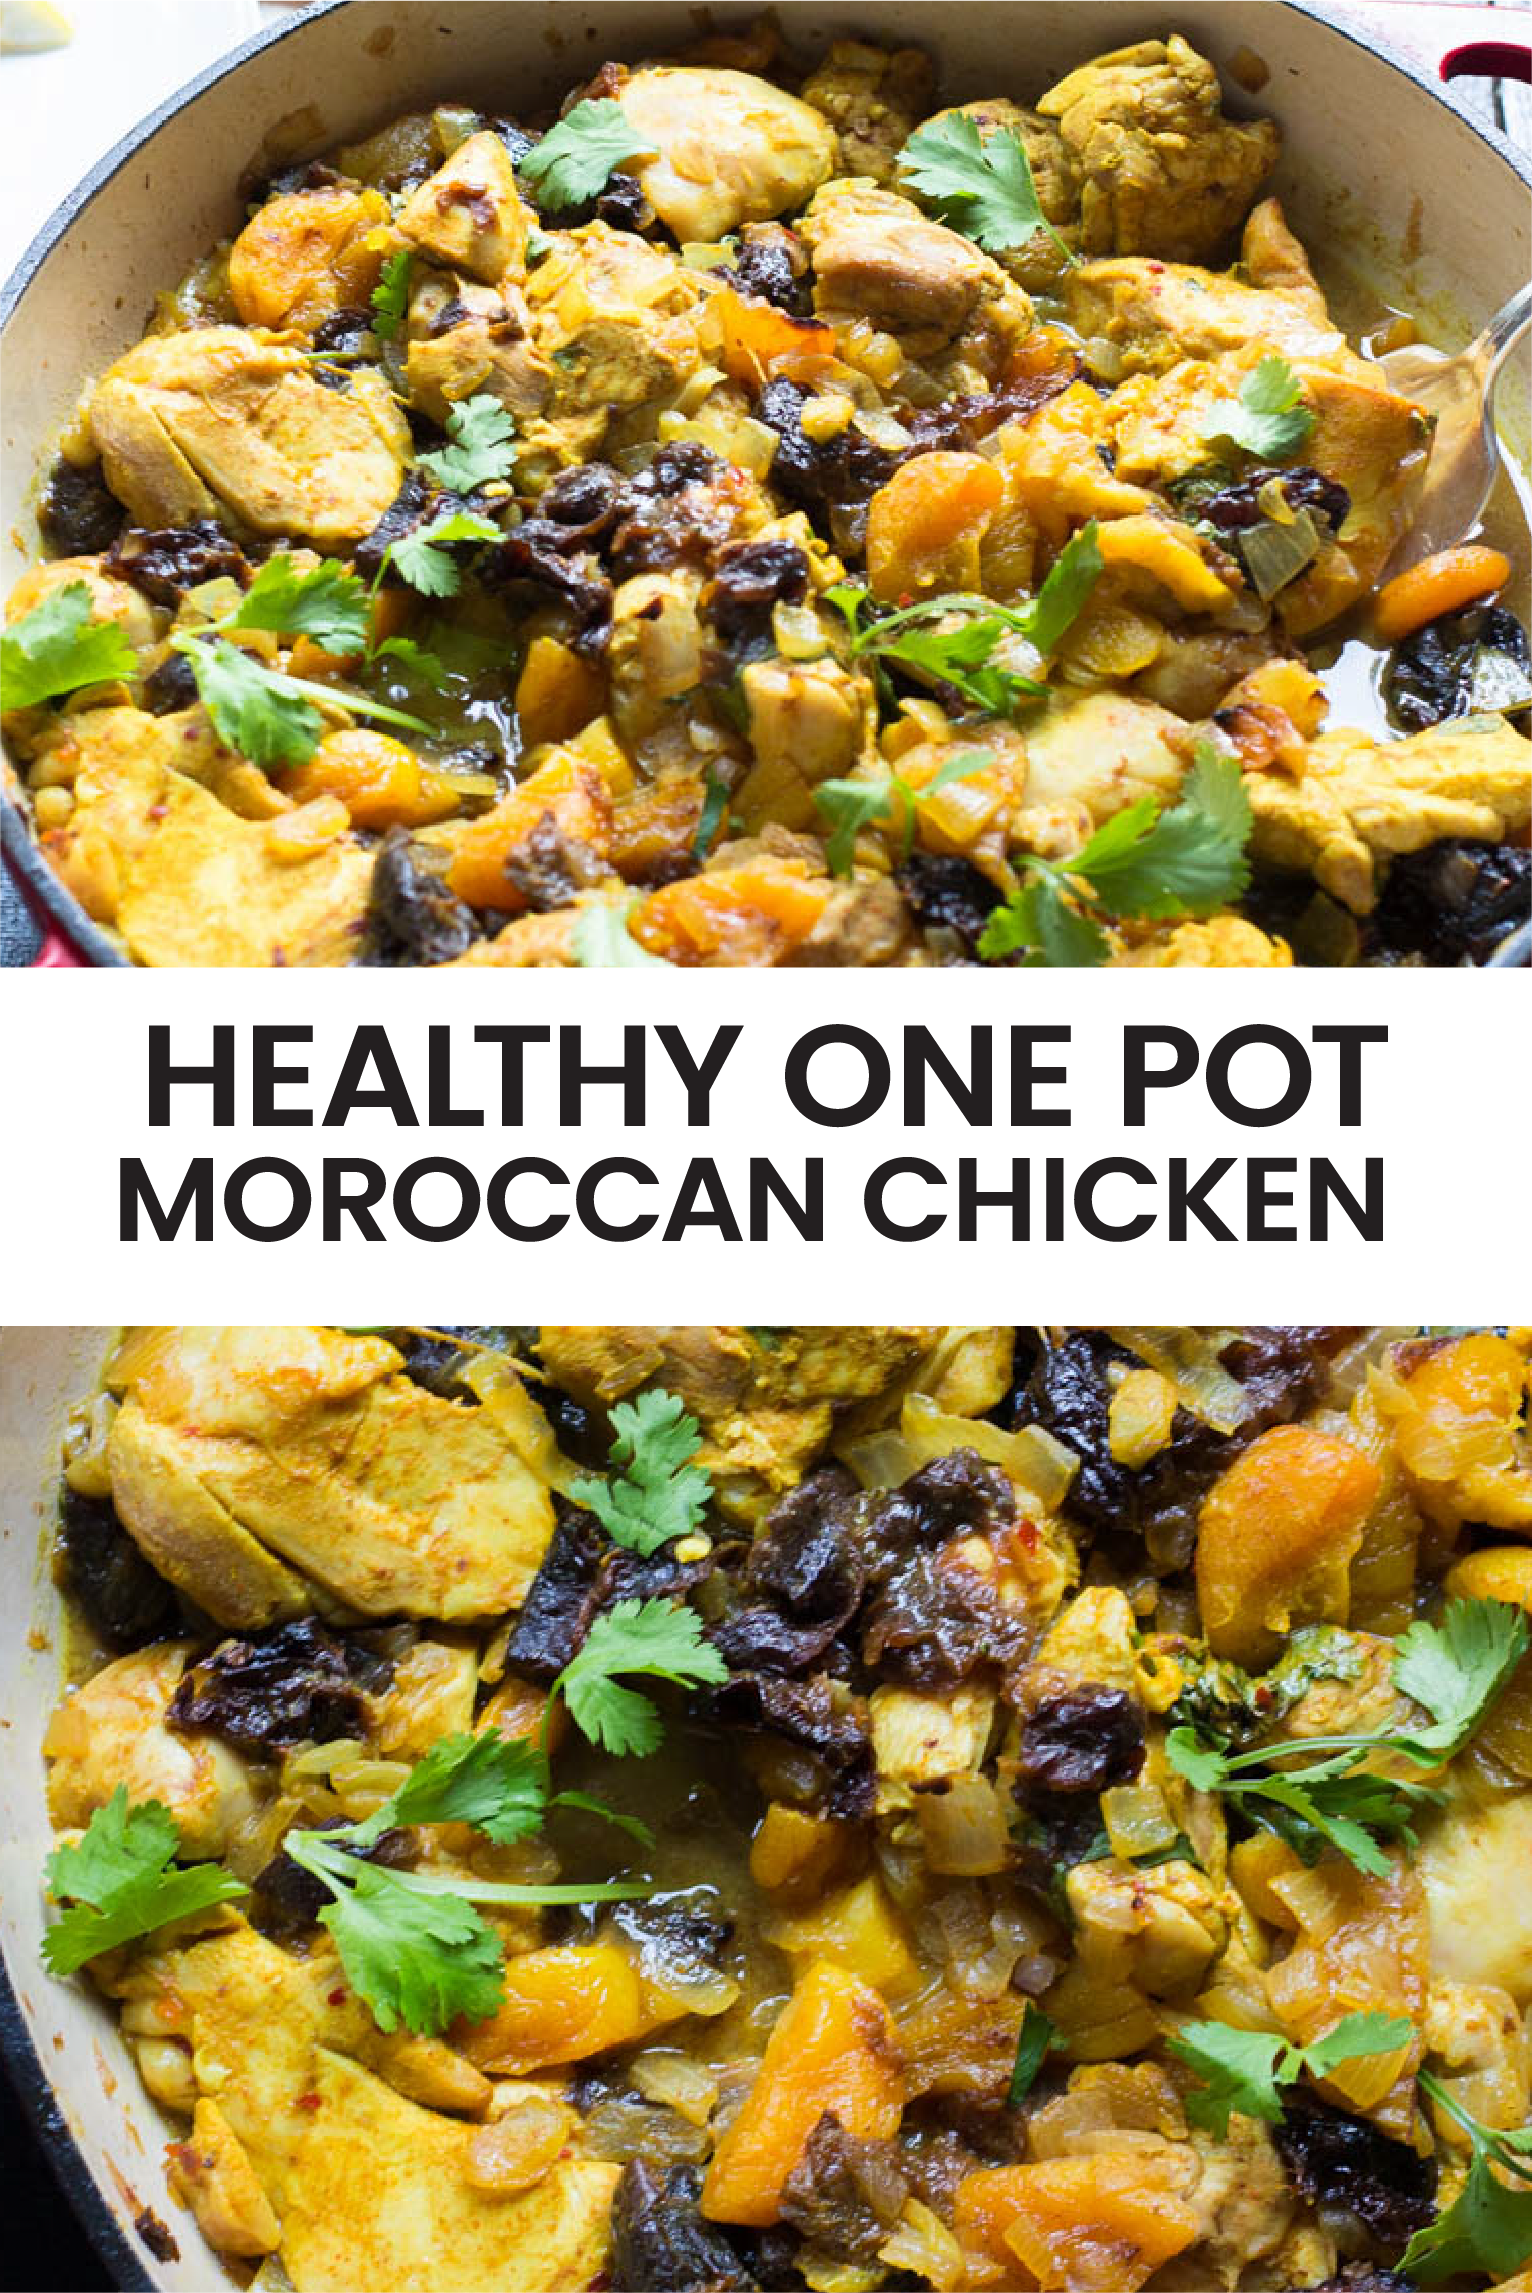 Healthy And Easy Moroccan Chicken A One Pot Chicken Recipe Recipe In 2020 Moroccan Chicken Recipe Moroccan Chicken Chicken Recipes